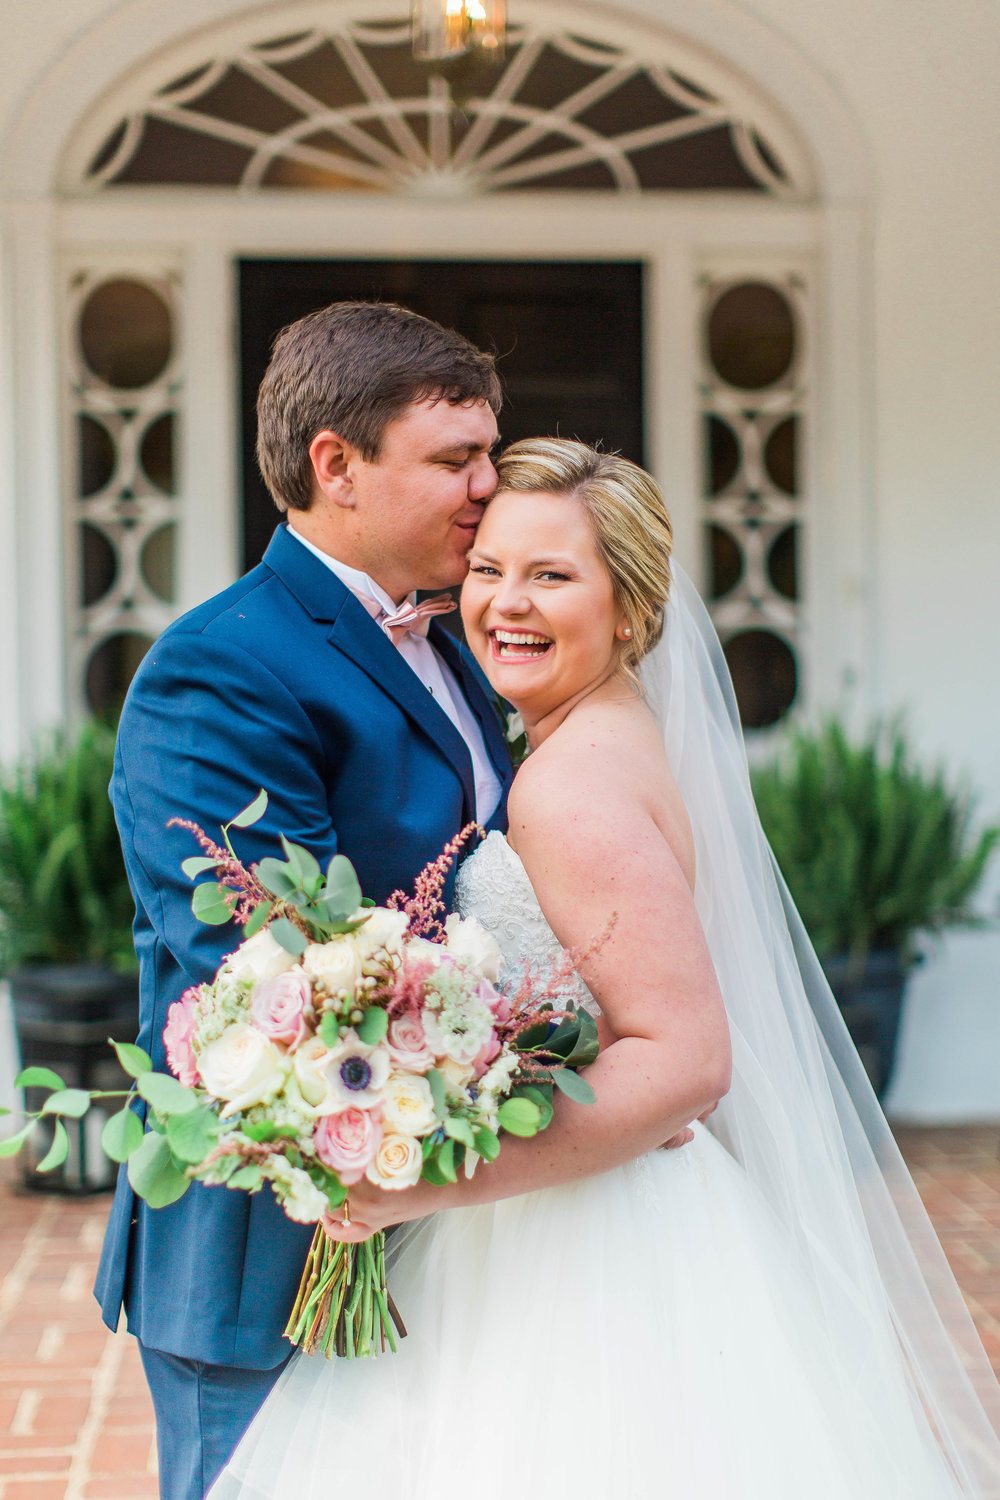 Wedding Inspiration: Pink and Blue Wedding Styled Shoot at Proctor Hall, Camden | Palmetto State Weddings